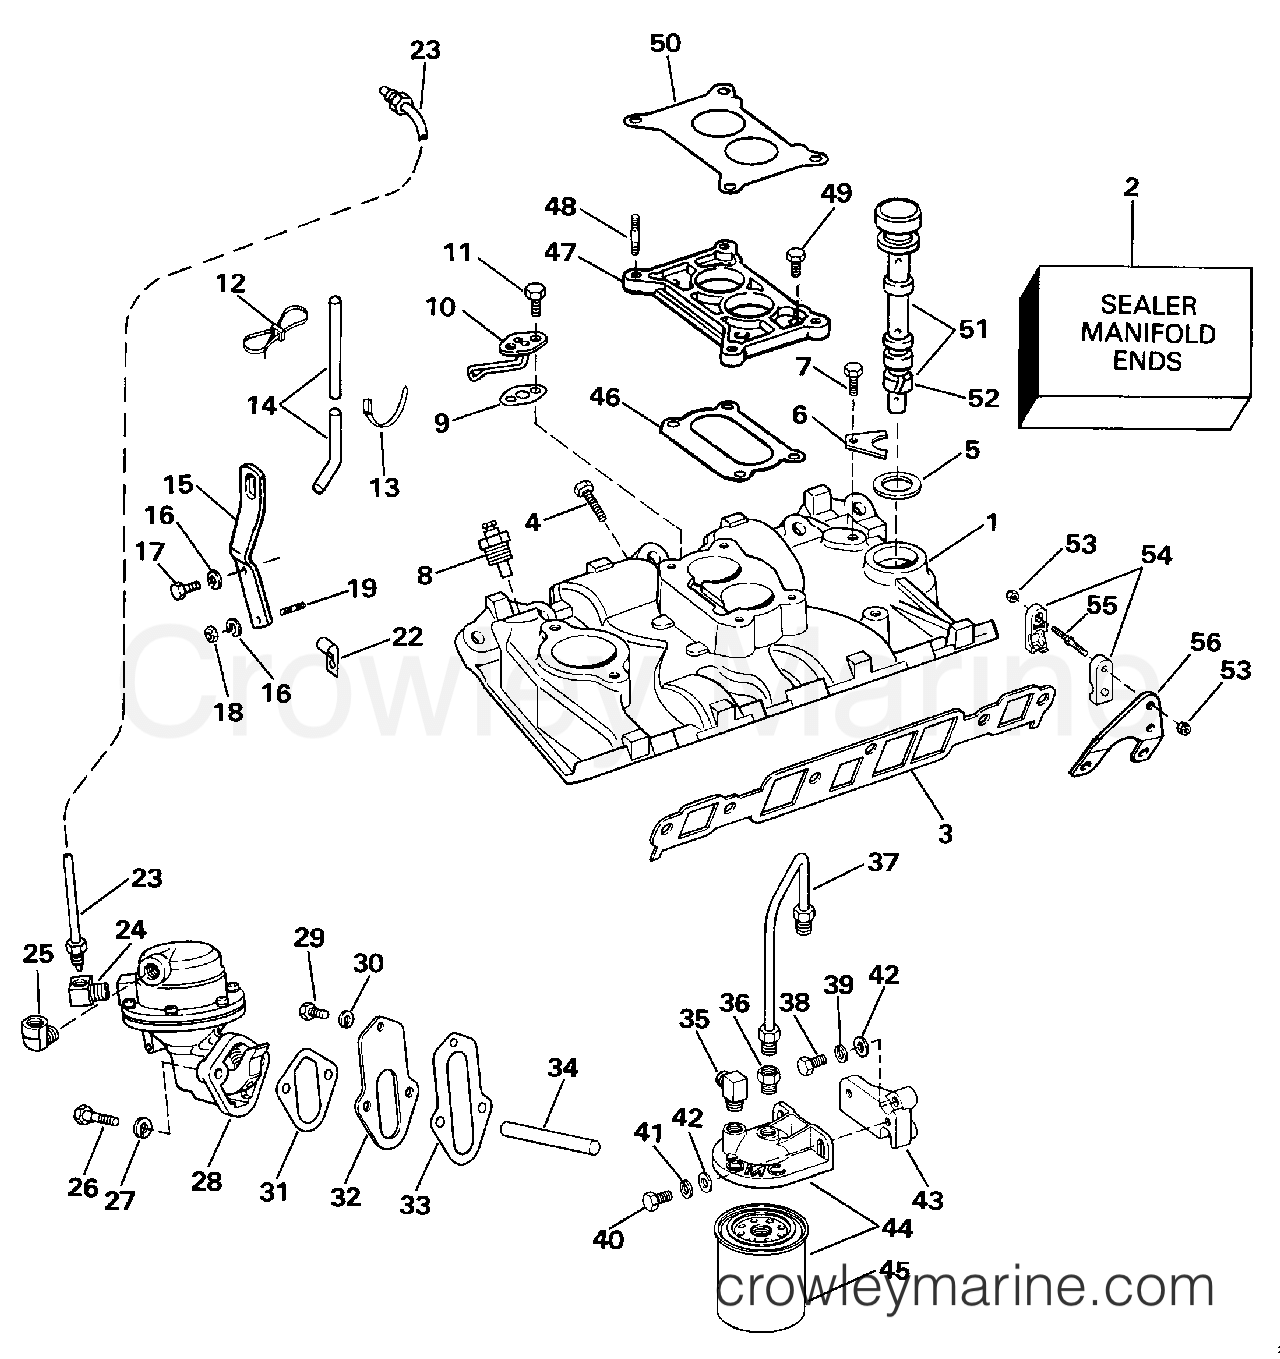 Omc Fuel Pump Diagram Wiring Schematics Stern Drive Page 4 And 1977